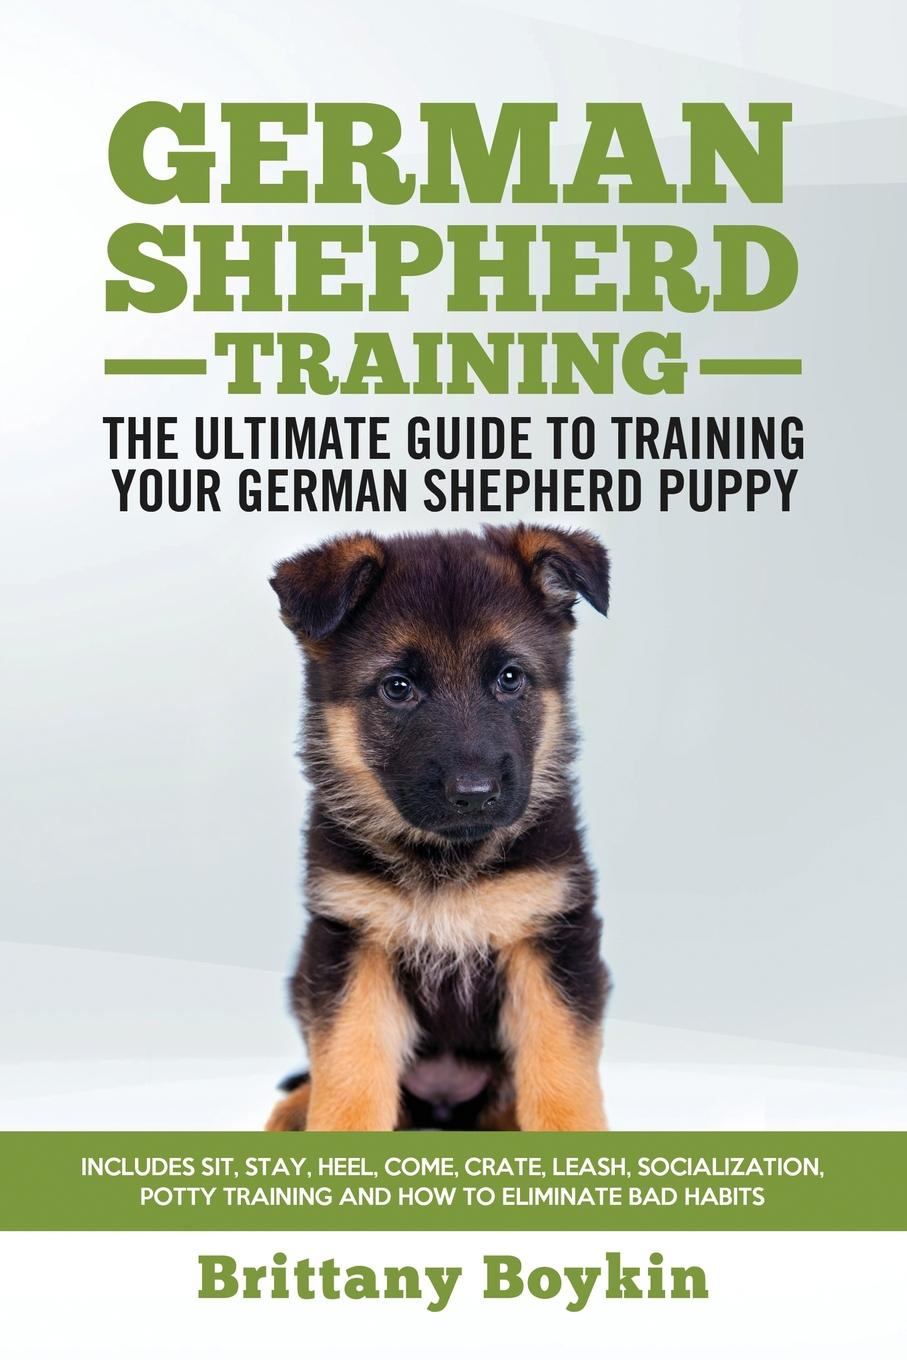 Brittany Boykin German Shepherd Training - the Ultimate Guide to Training Your German Shepherd Puppy. Includes Sit, Stay, Heel, Come, Crate, Leash, Socialization, Potty Training and How to Eliminate Bad Habits how to stay alive the ultimate survival guide for any situation